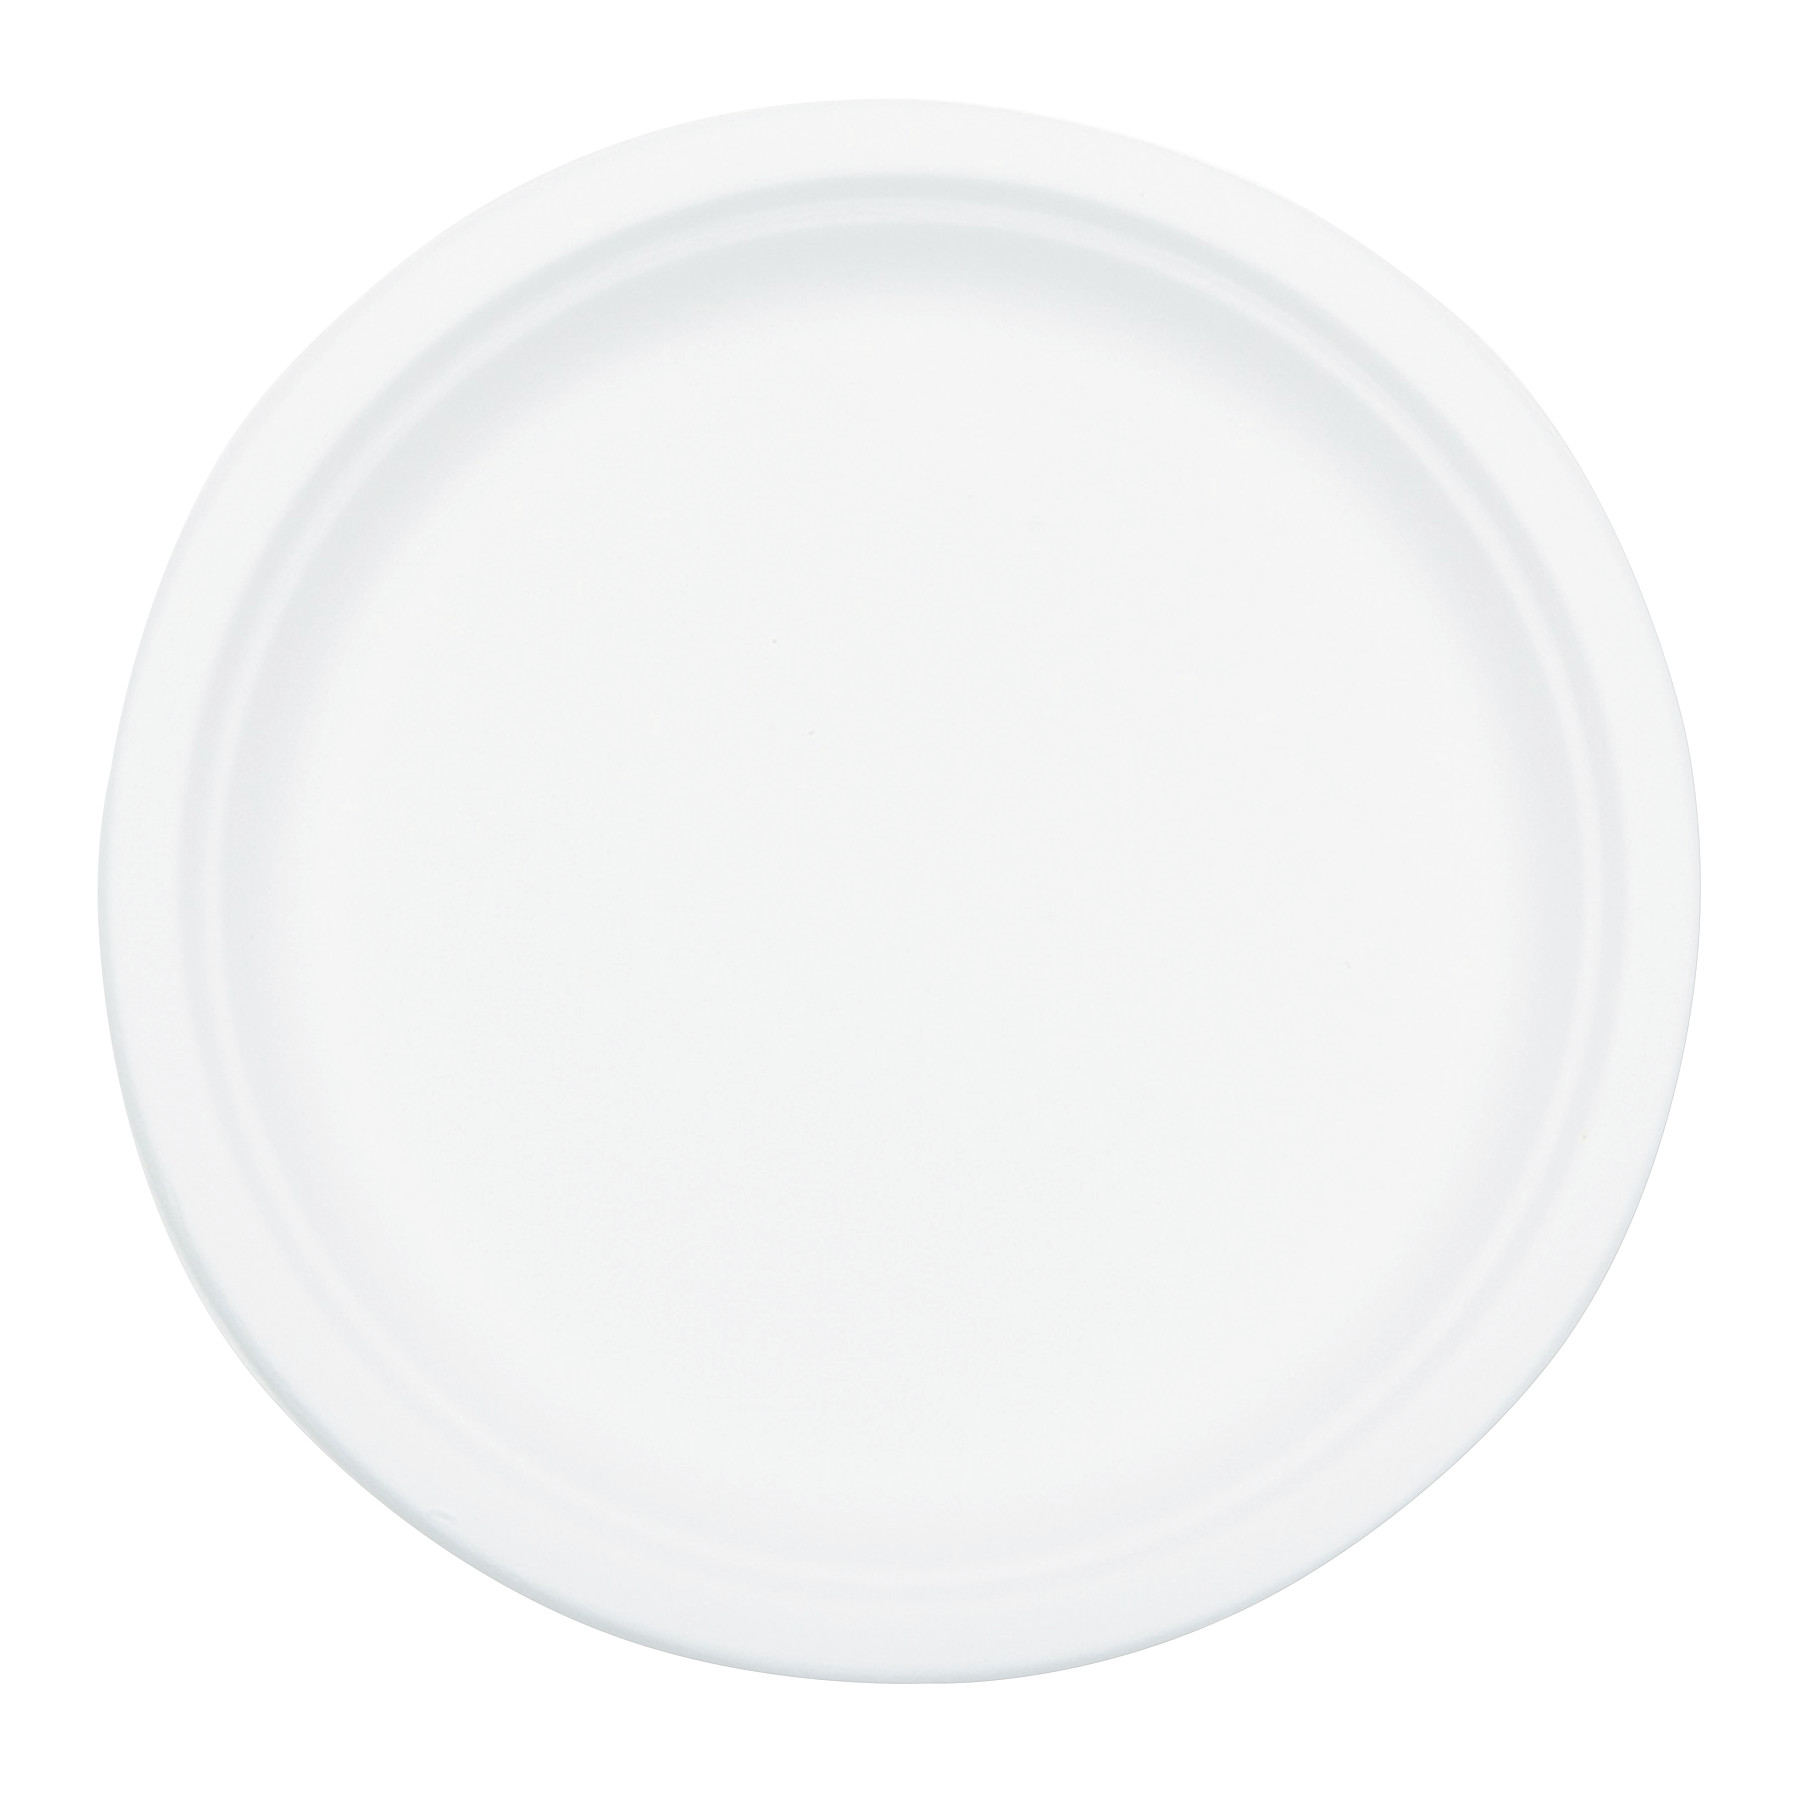 NatureHouse Compostable Sugarcane Bagasse 10 in Plate Round, White, 50/Pack